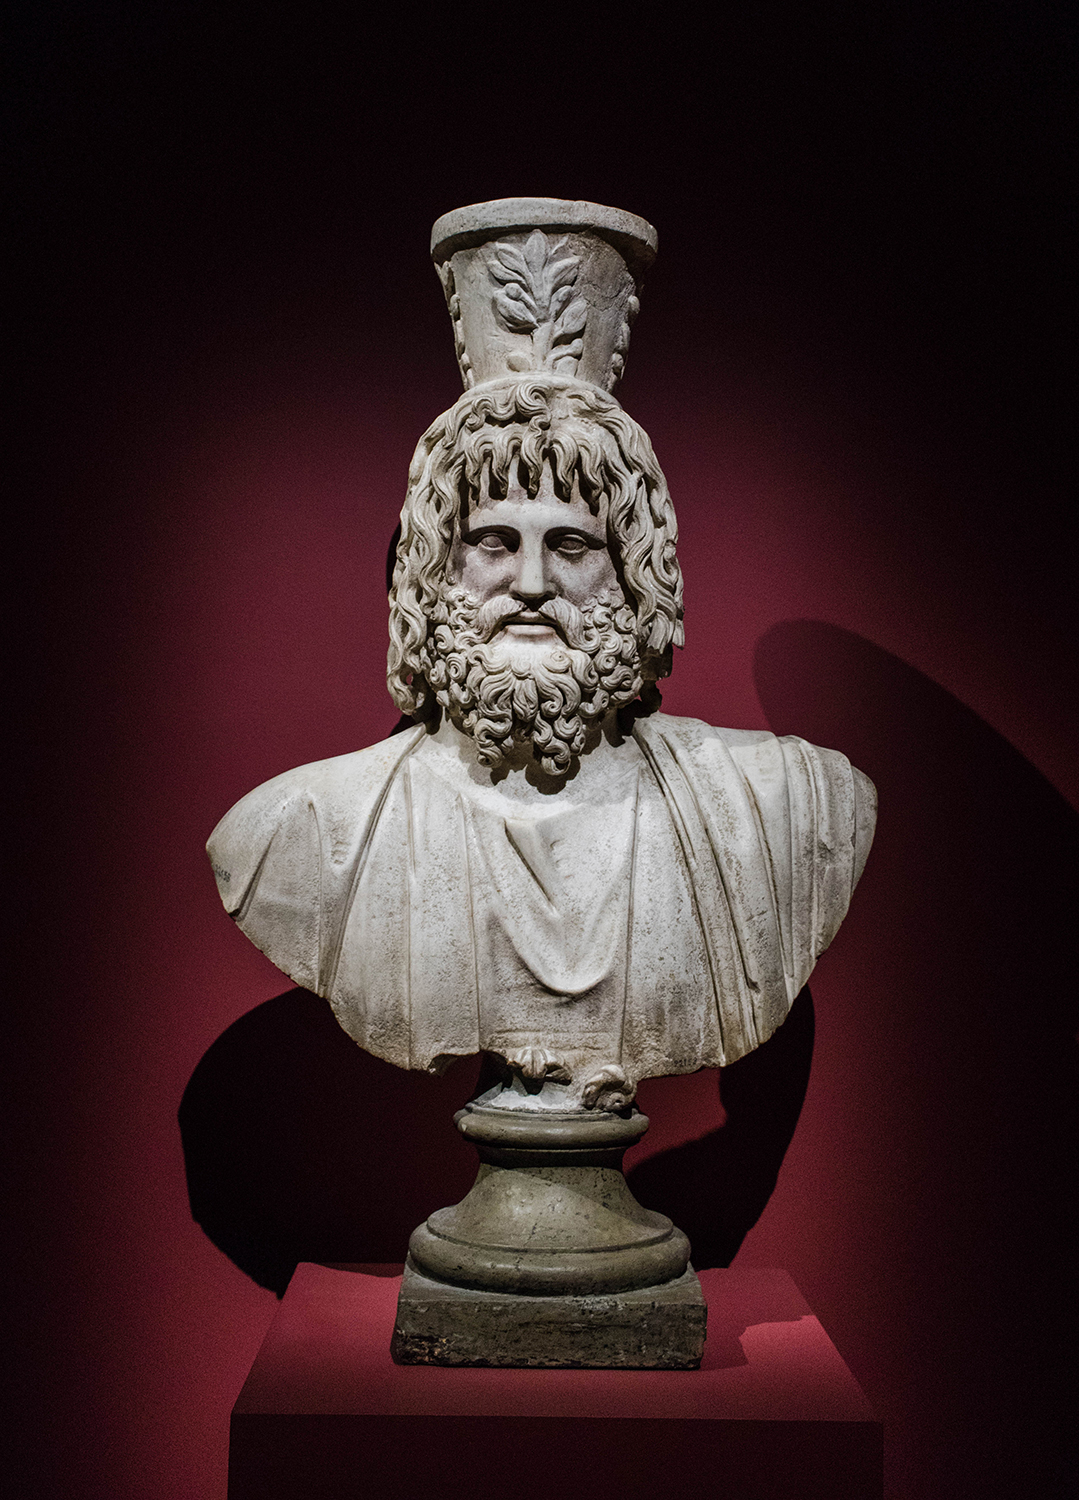 sunken_cities_greek_bust_red.jpg